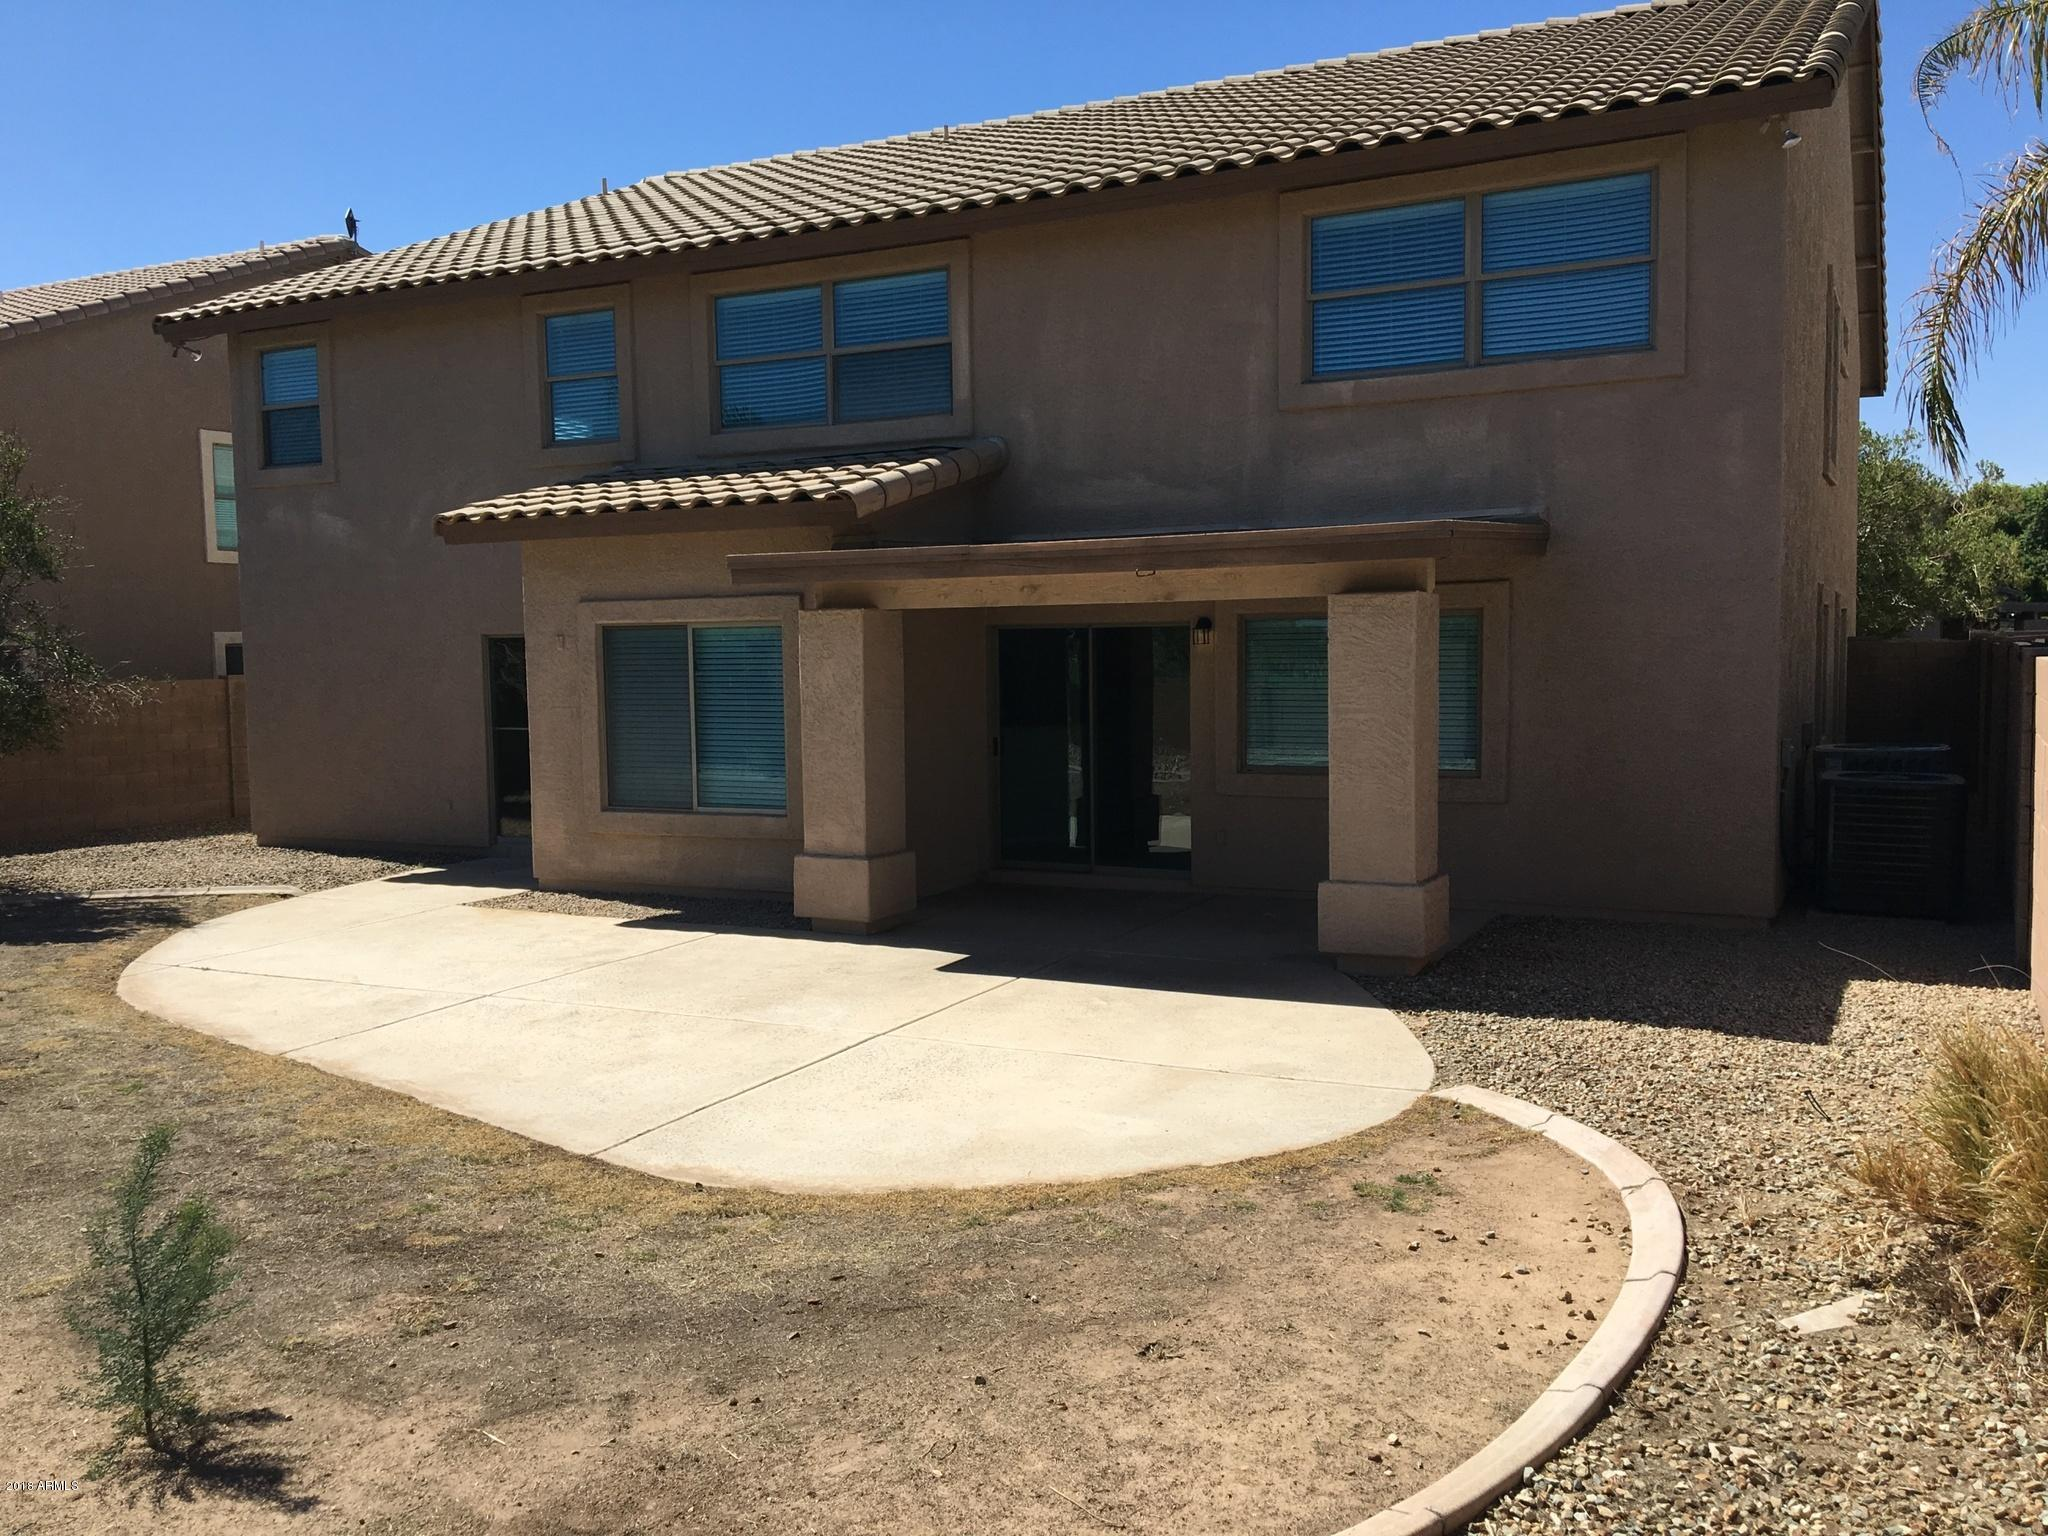 MLS 5831928 20361 N 89TH Drive, Peoria, AZ 85382 Peoria AZ Dove Valley Ranch